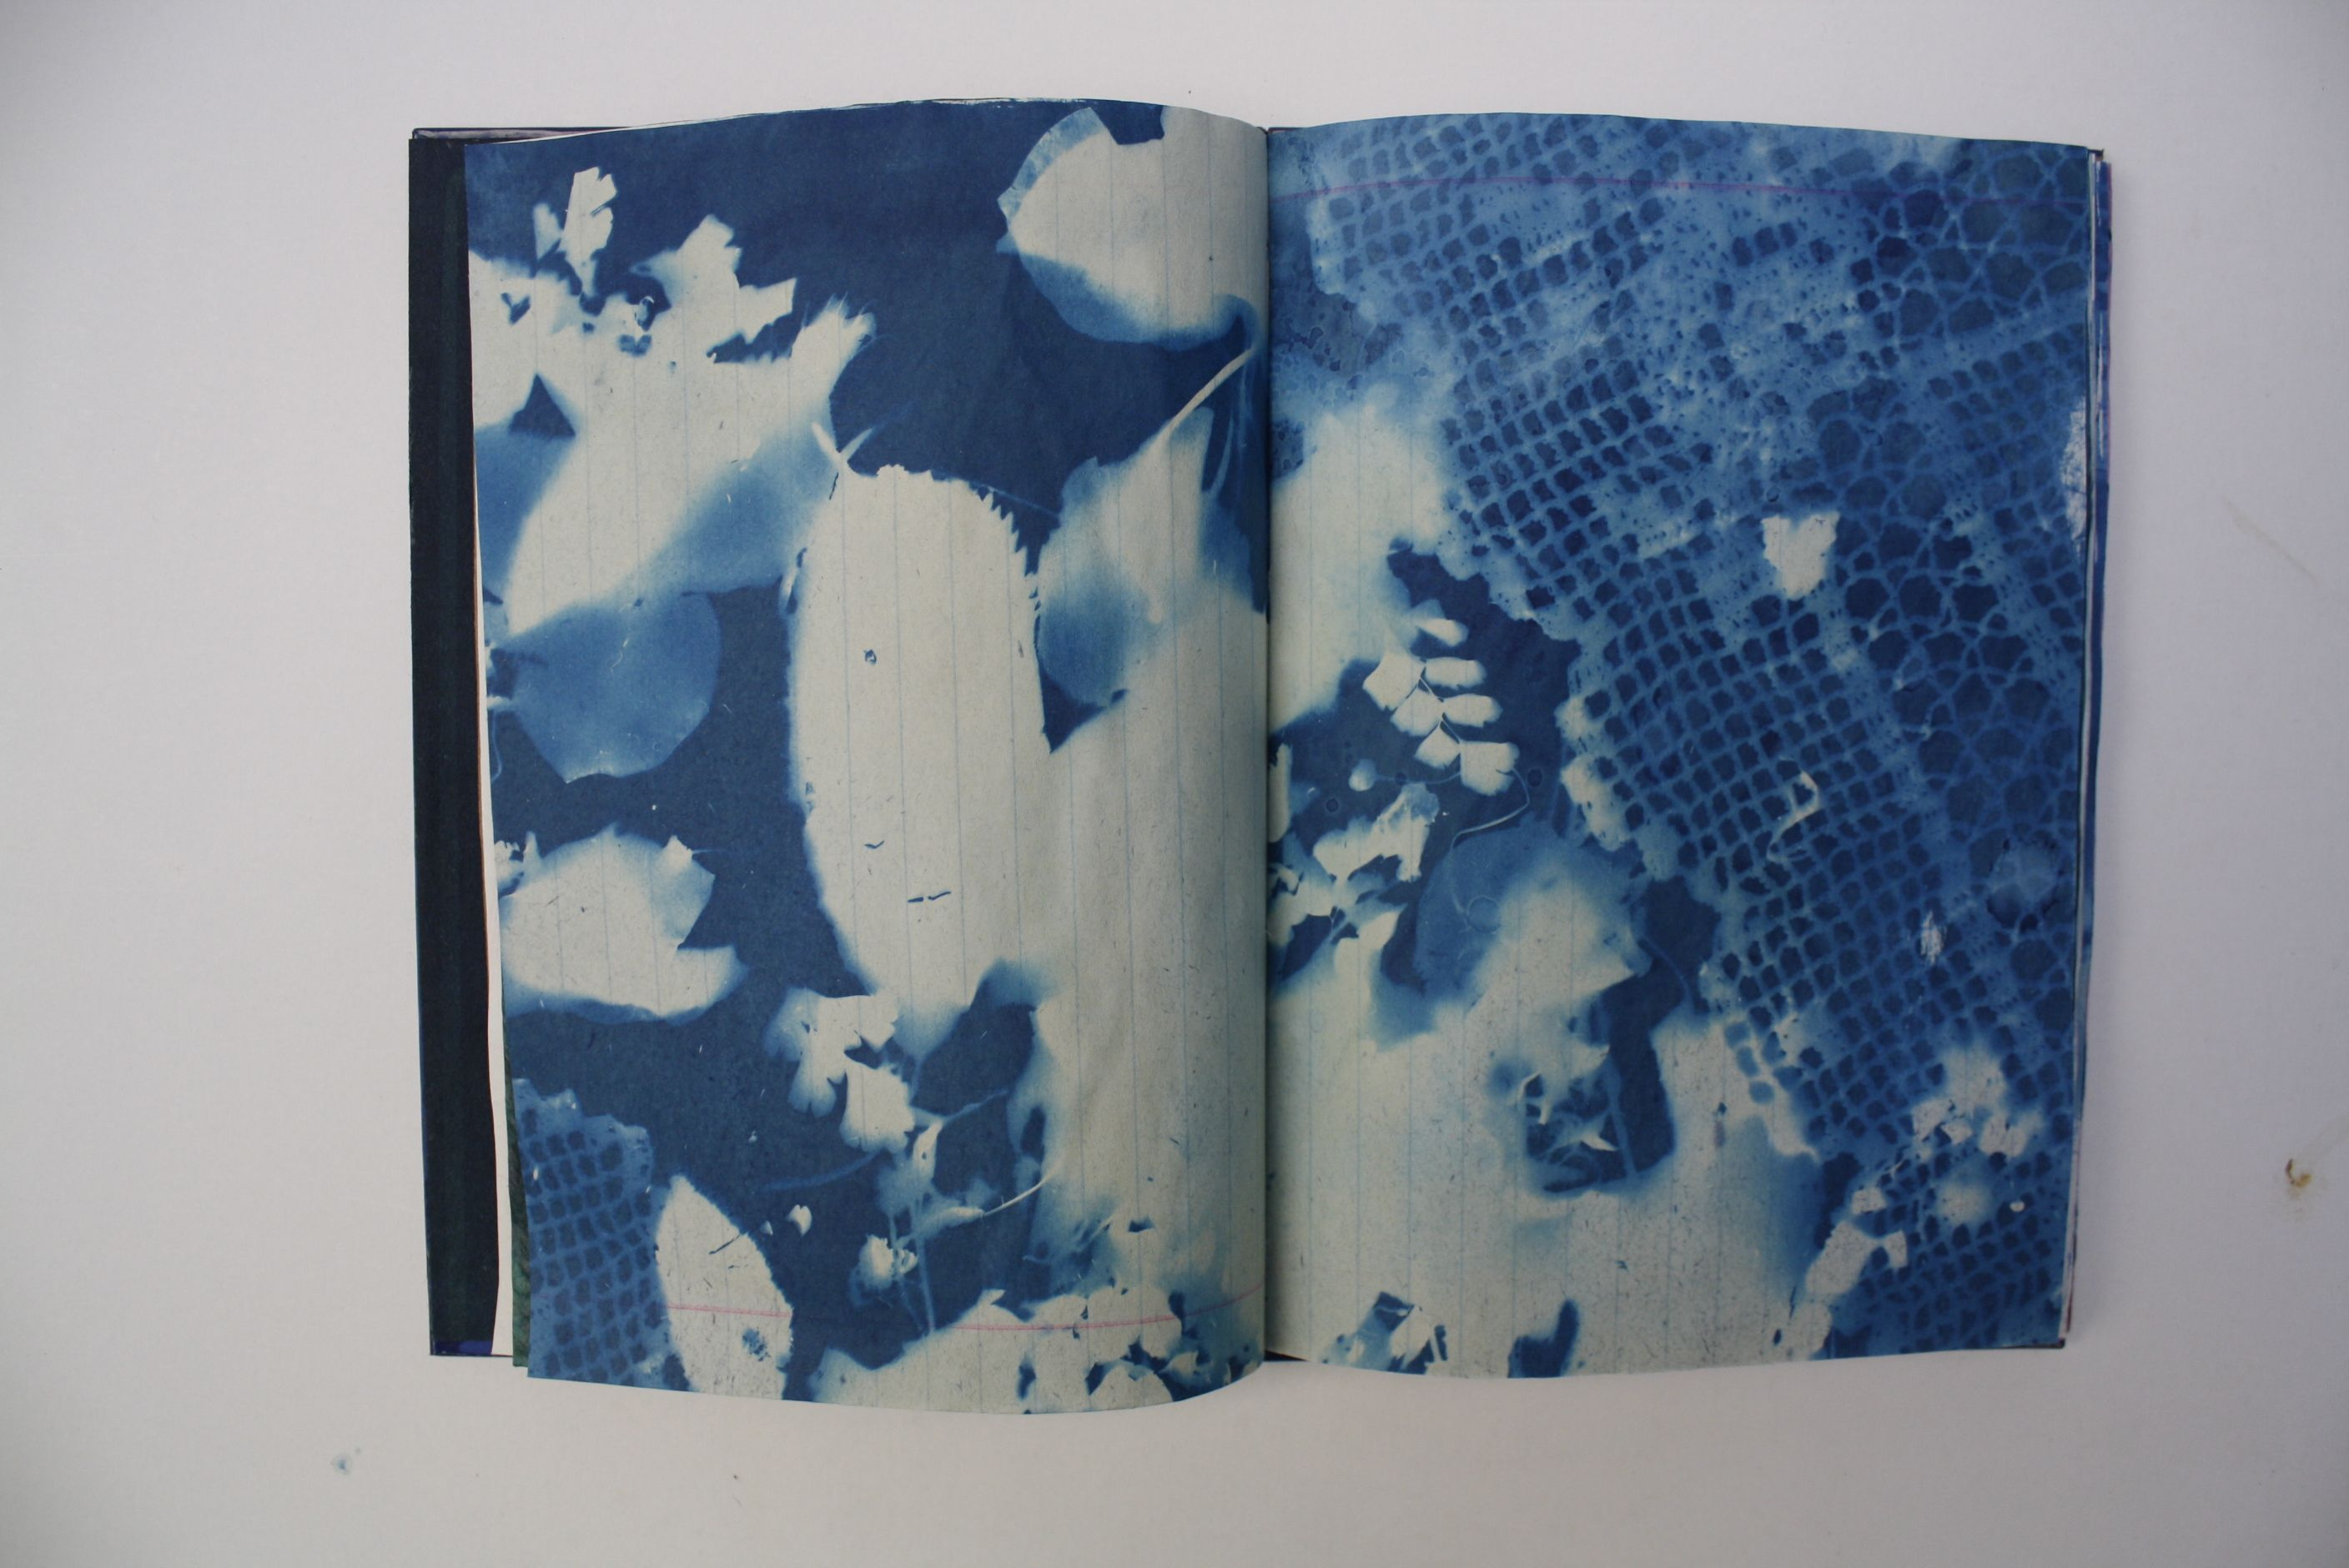 Artist's book with cyanotypes